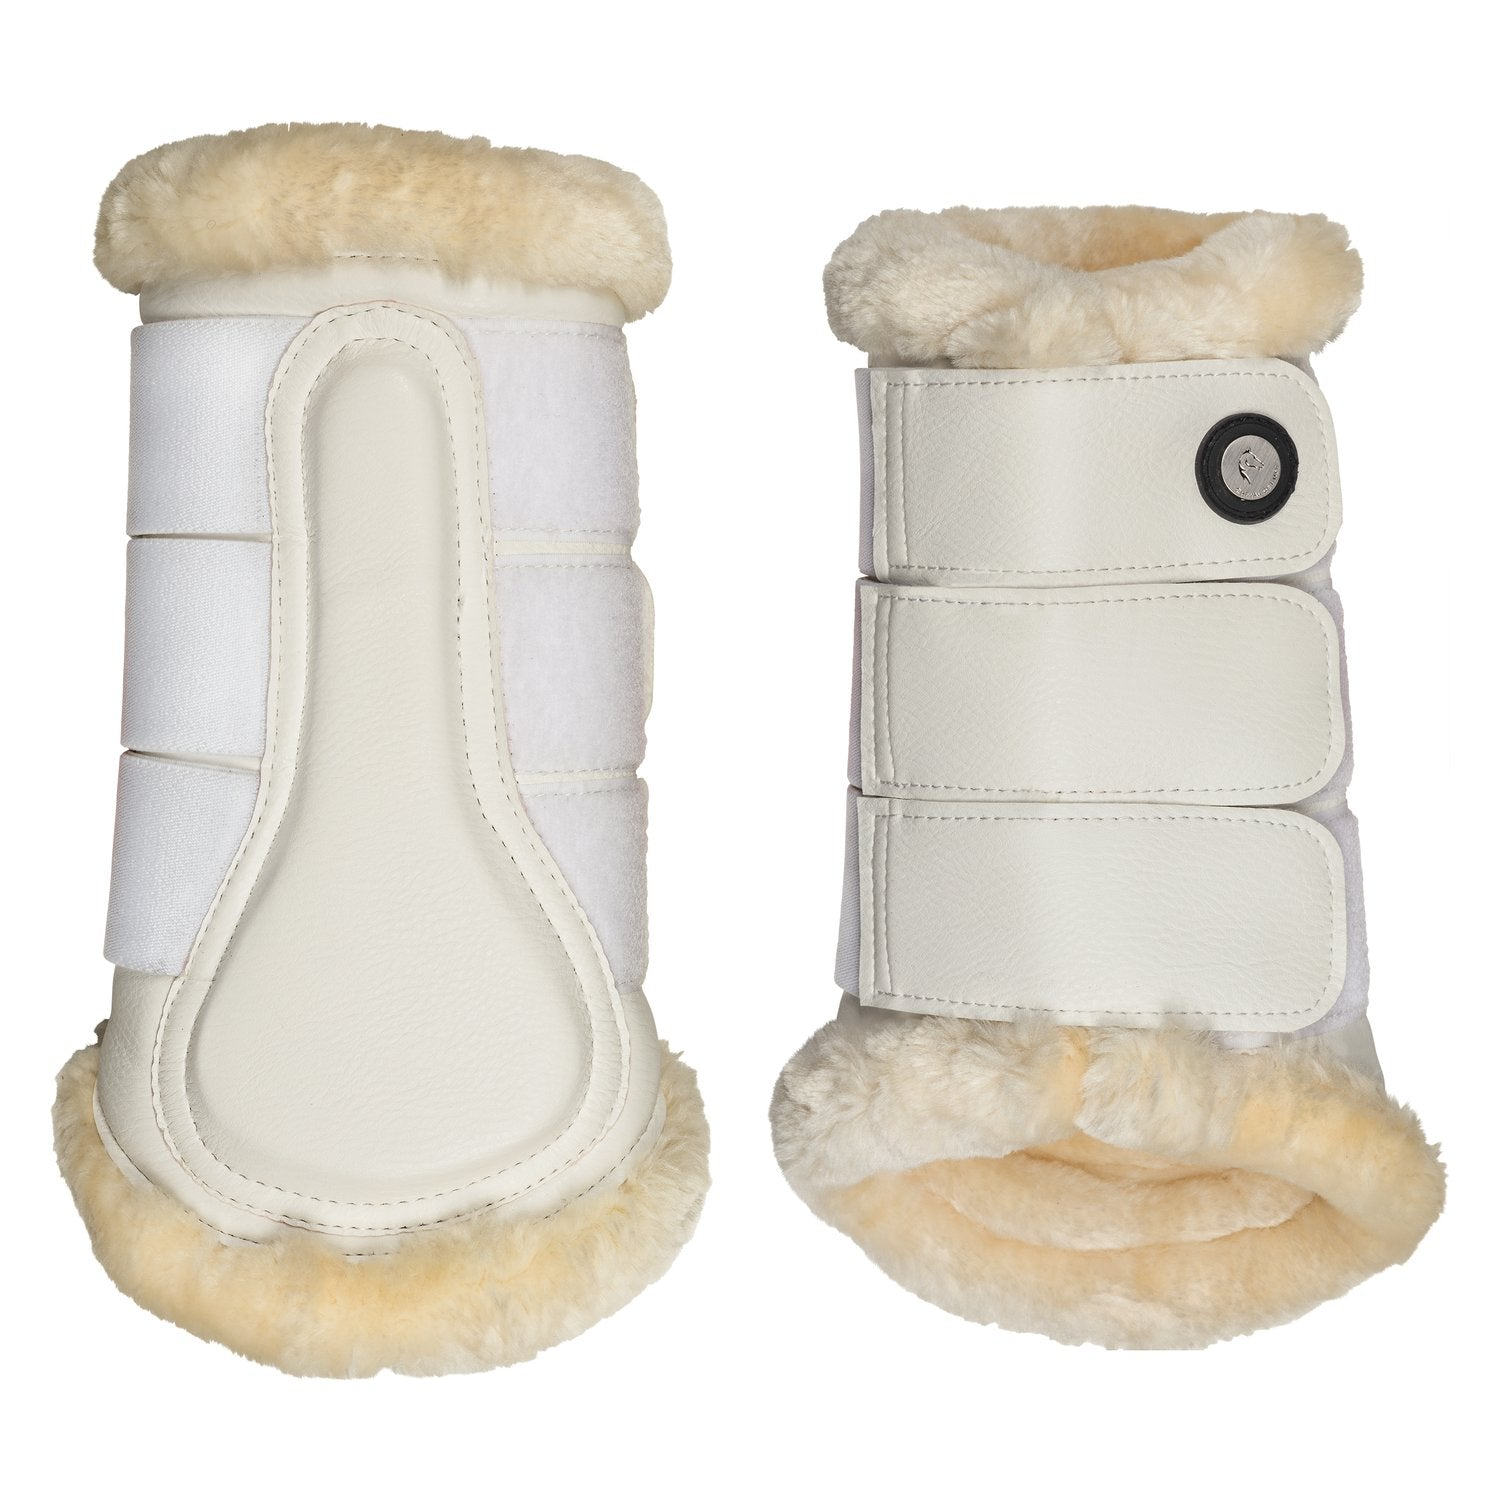 Cheval de Luxe White Tendon Boots